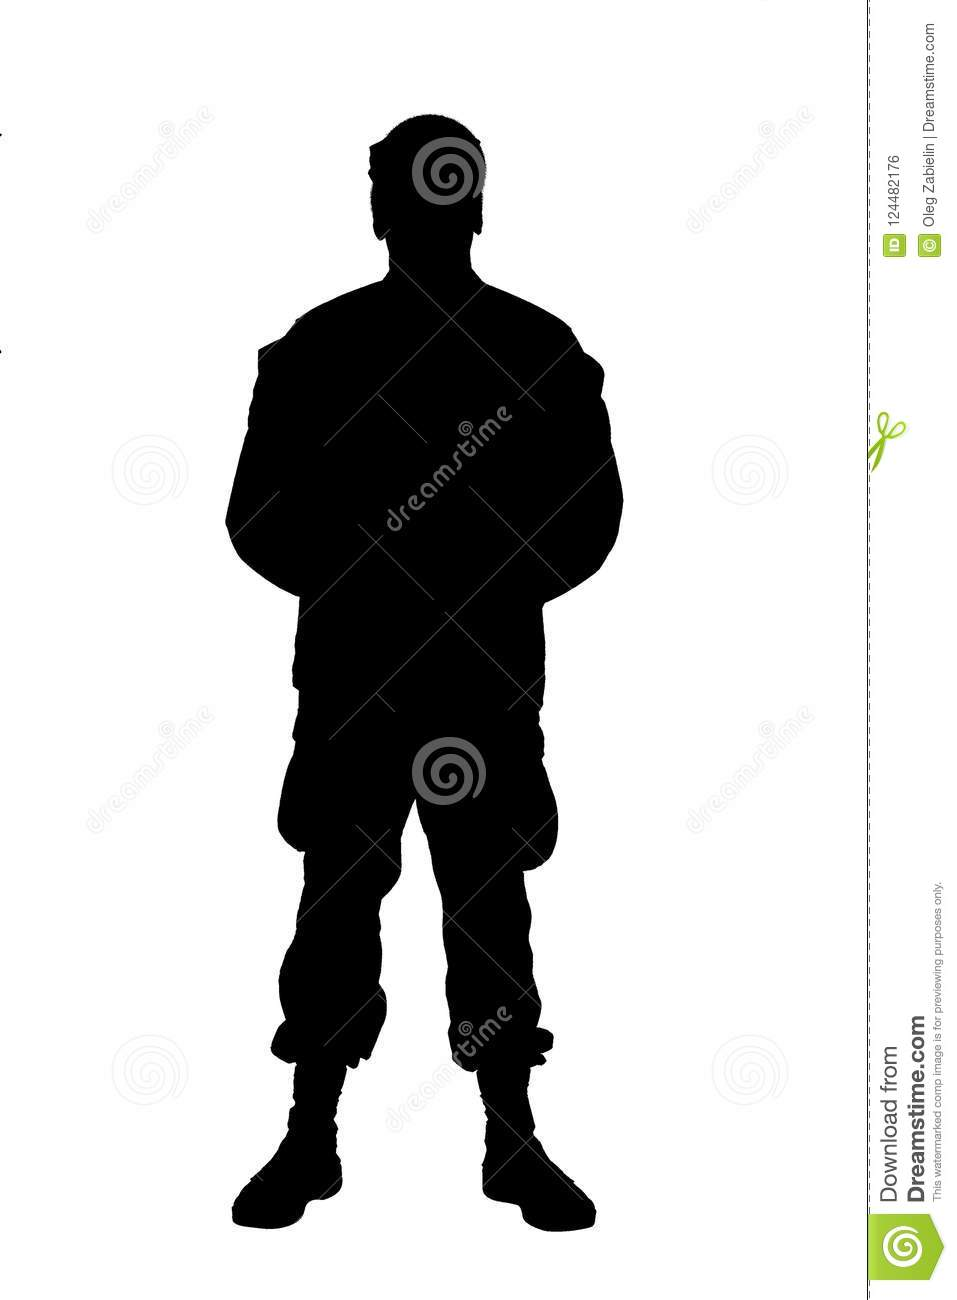 Soldier in parade rest position front view shoot